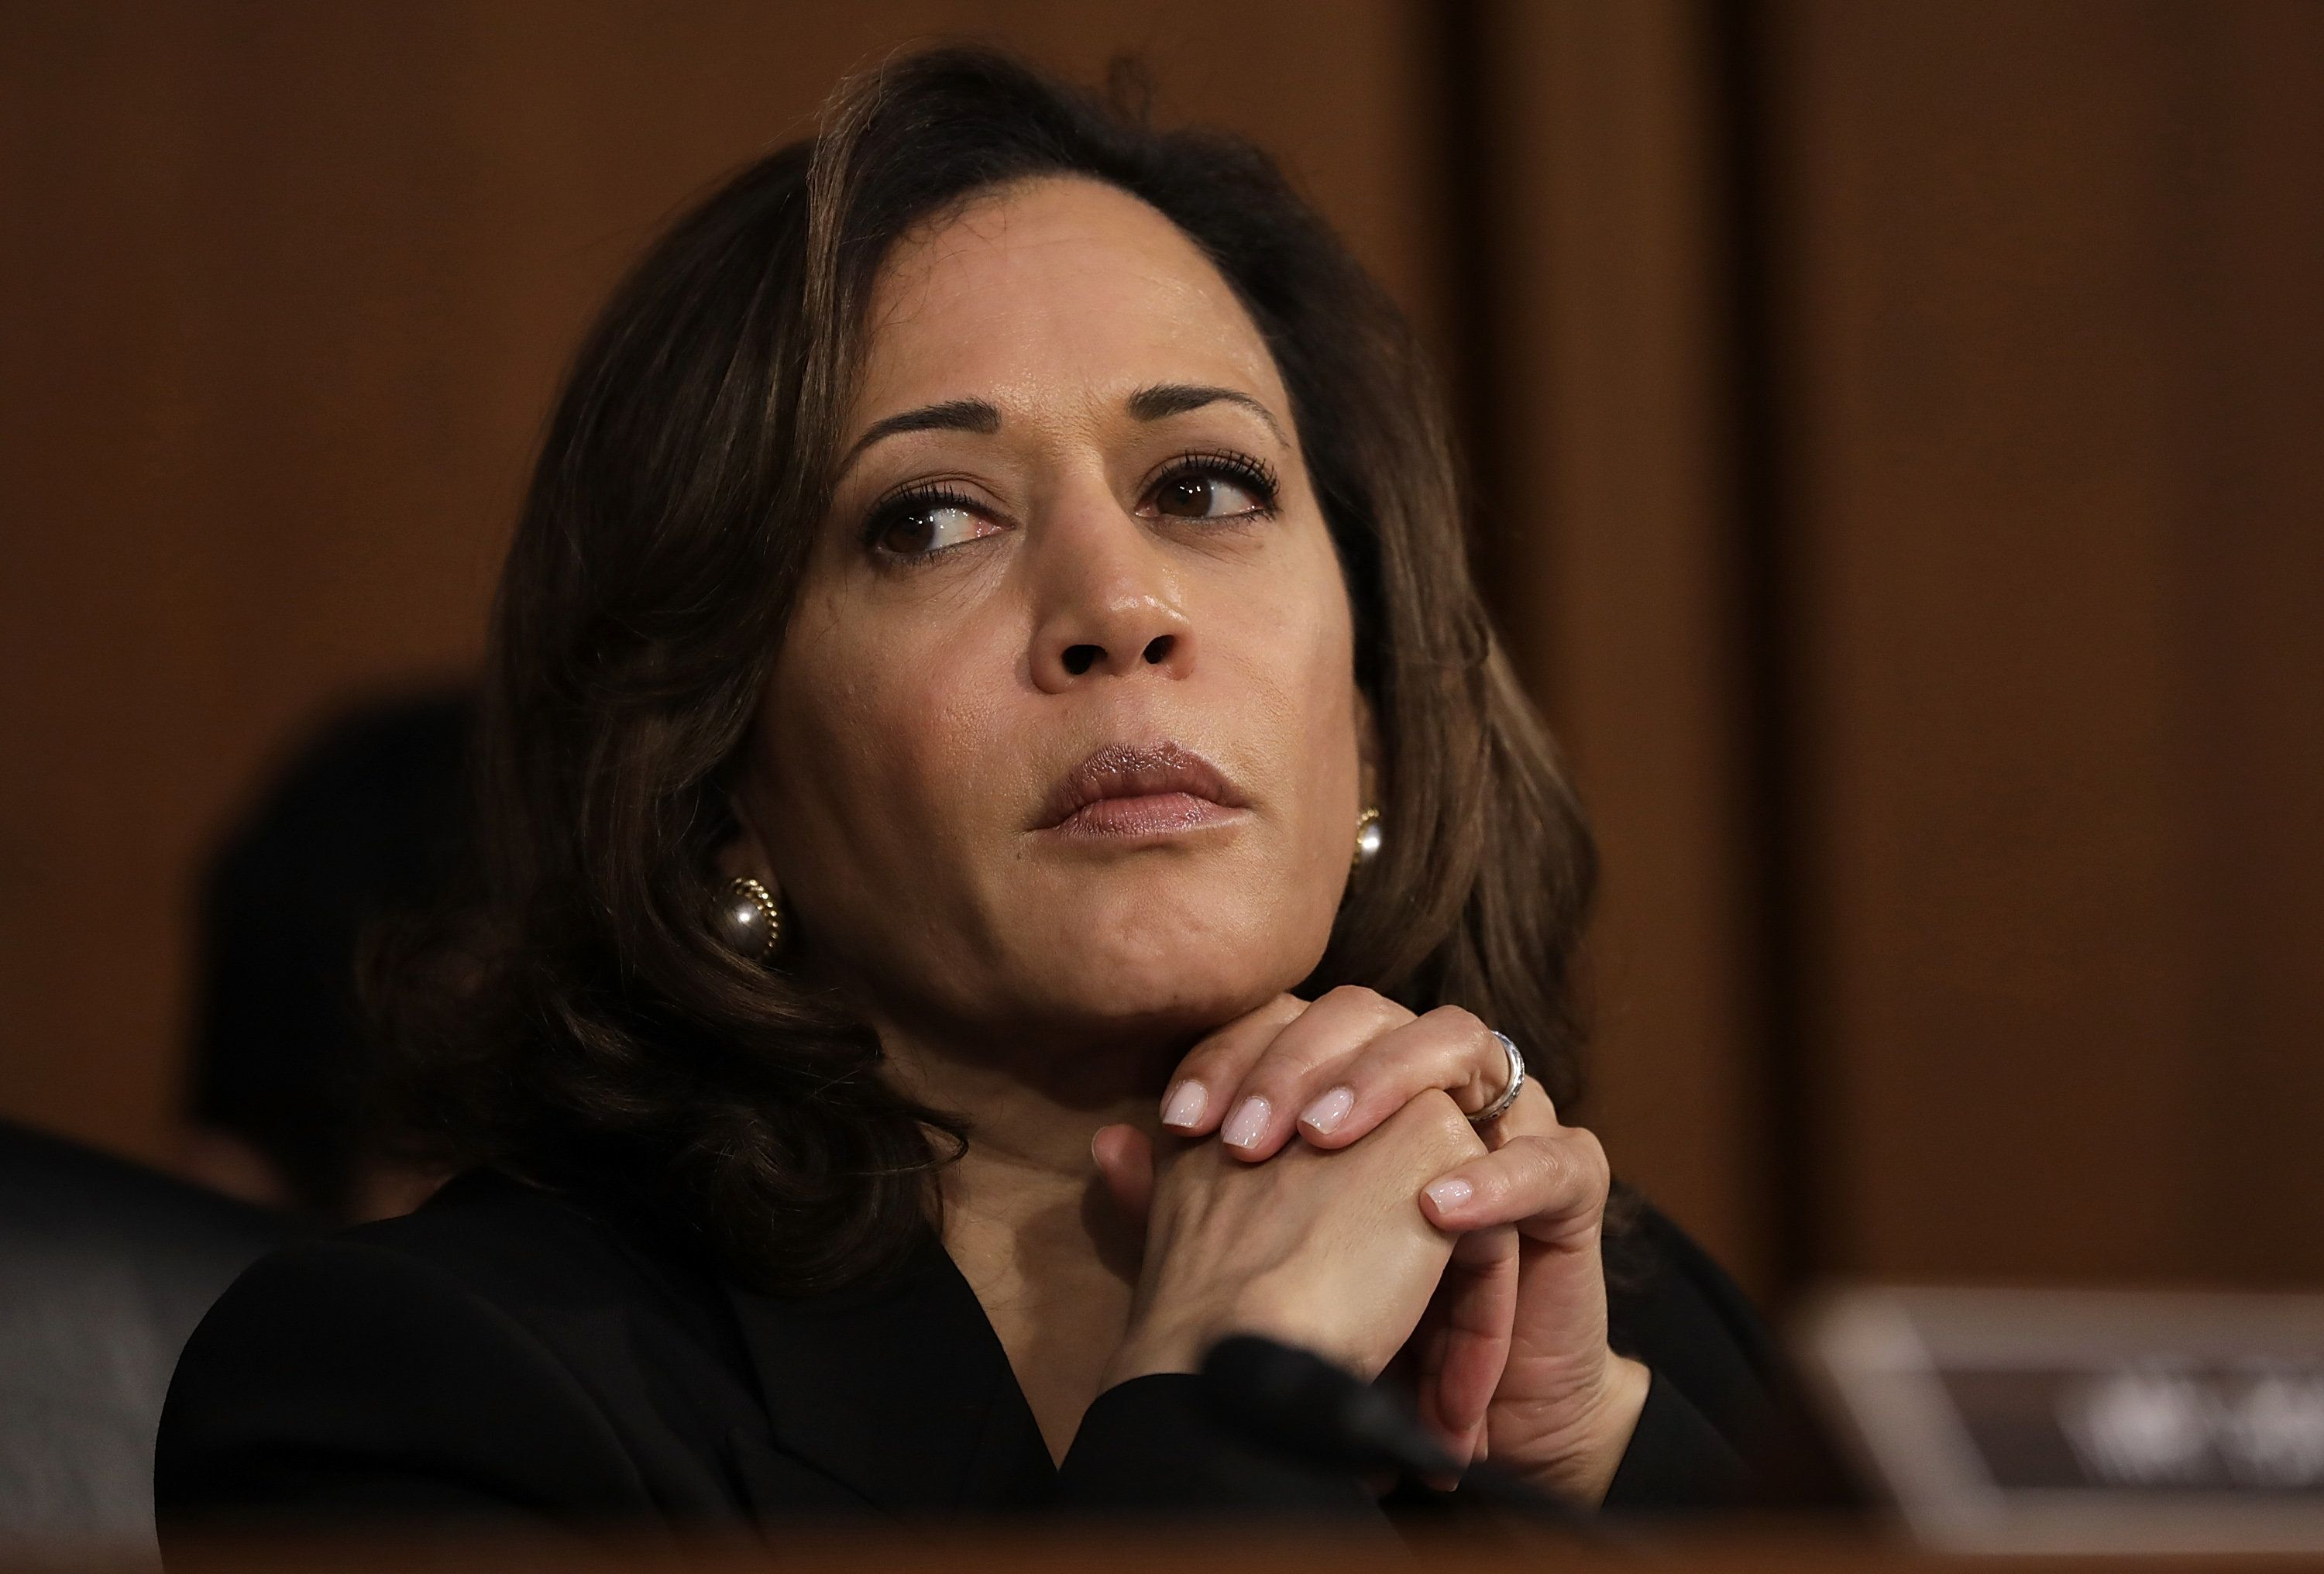 Democratic presidential candidate Kamala Harris spoke about gun violence at a CNN town hall Monday night.